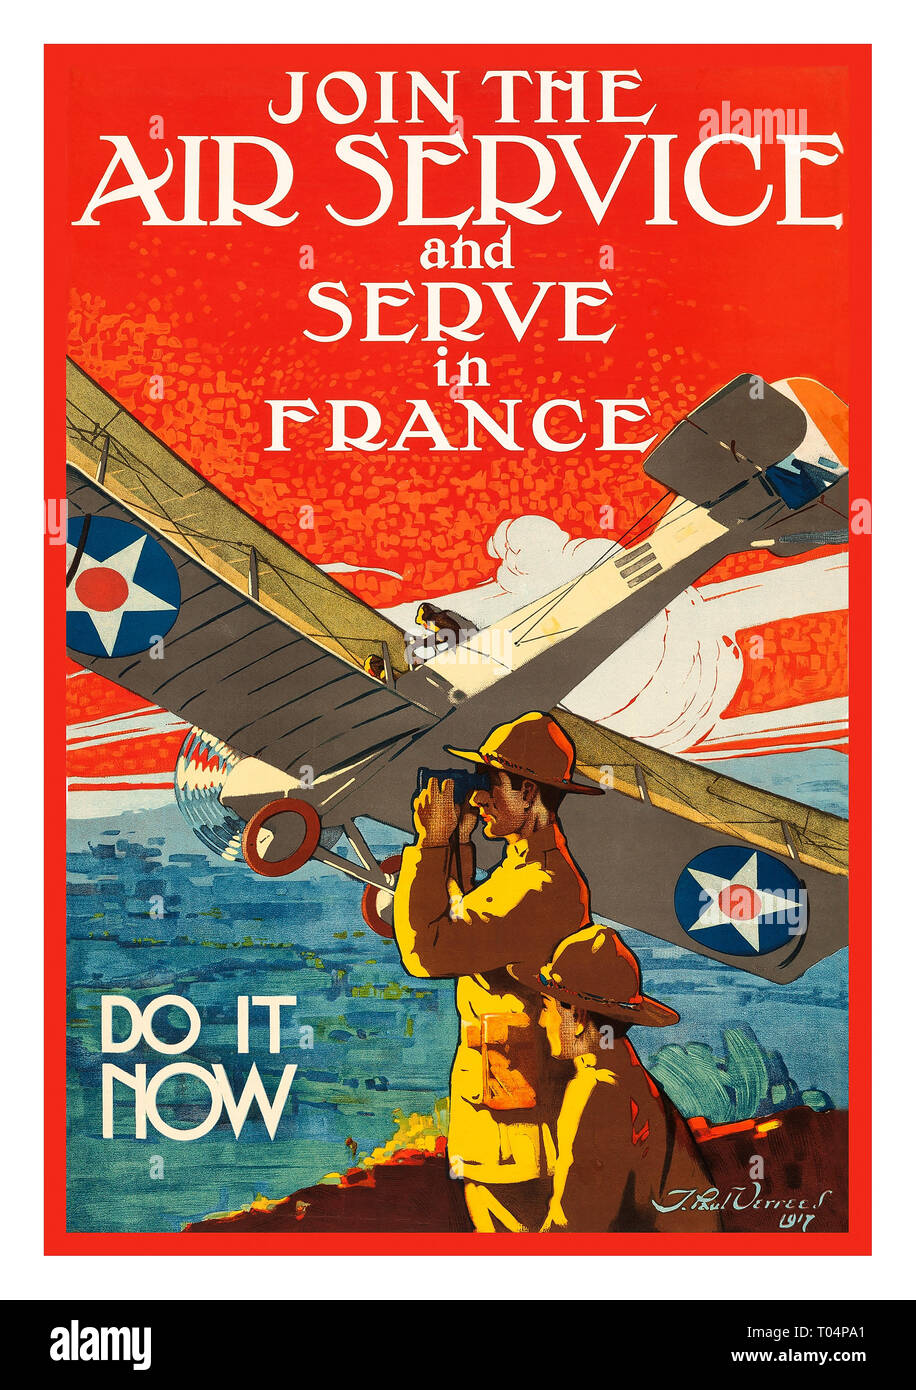 WWI JOIN THE AIR SERVICE AND SERVE IN FRANCE by Verrees 1917 At the start of the Great War, the airplane was only ten years old, and the U.S. military ranked 16th in the world, just behind Portugal. By July of 1917, General John J. Pershing requested a force of one million men. To appeal to potential recruits, a propaganda campaign was crafted by the Committee on Public Information that included recruiting posters by some of America's top illustrators. Themes of honour, patriotism, adventure, education, and heroism themed these recruitment call-to-action posters. - Stock Image